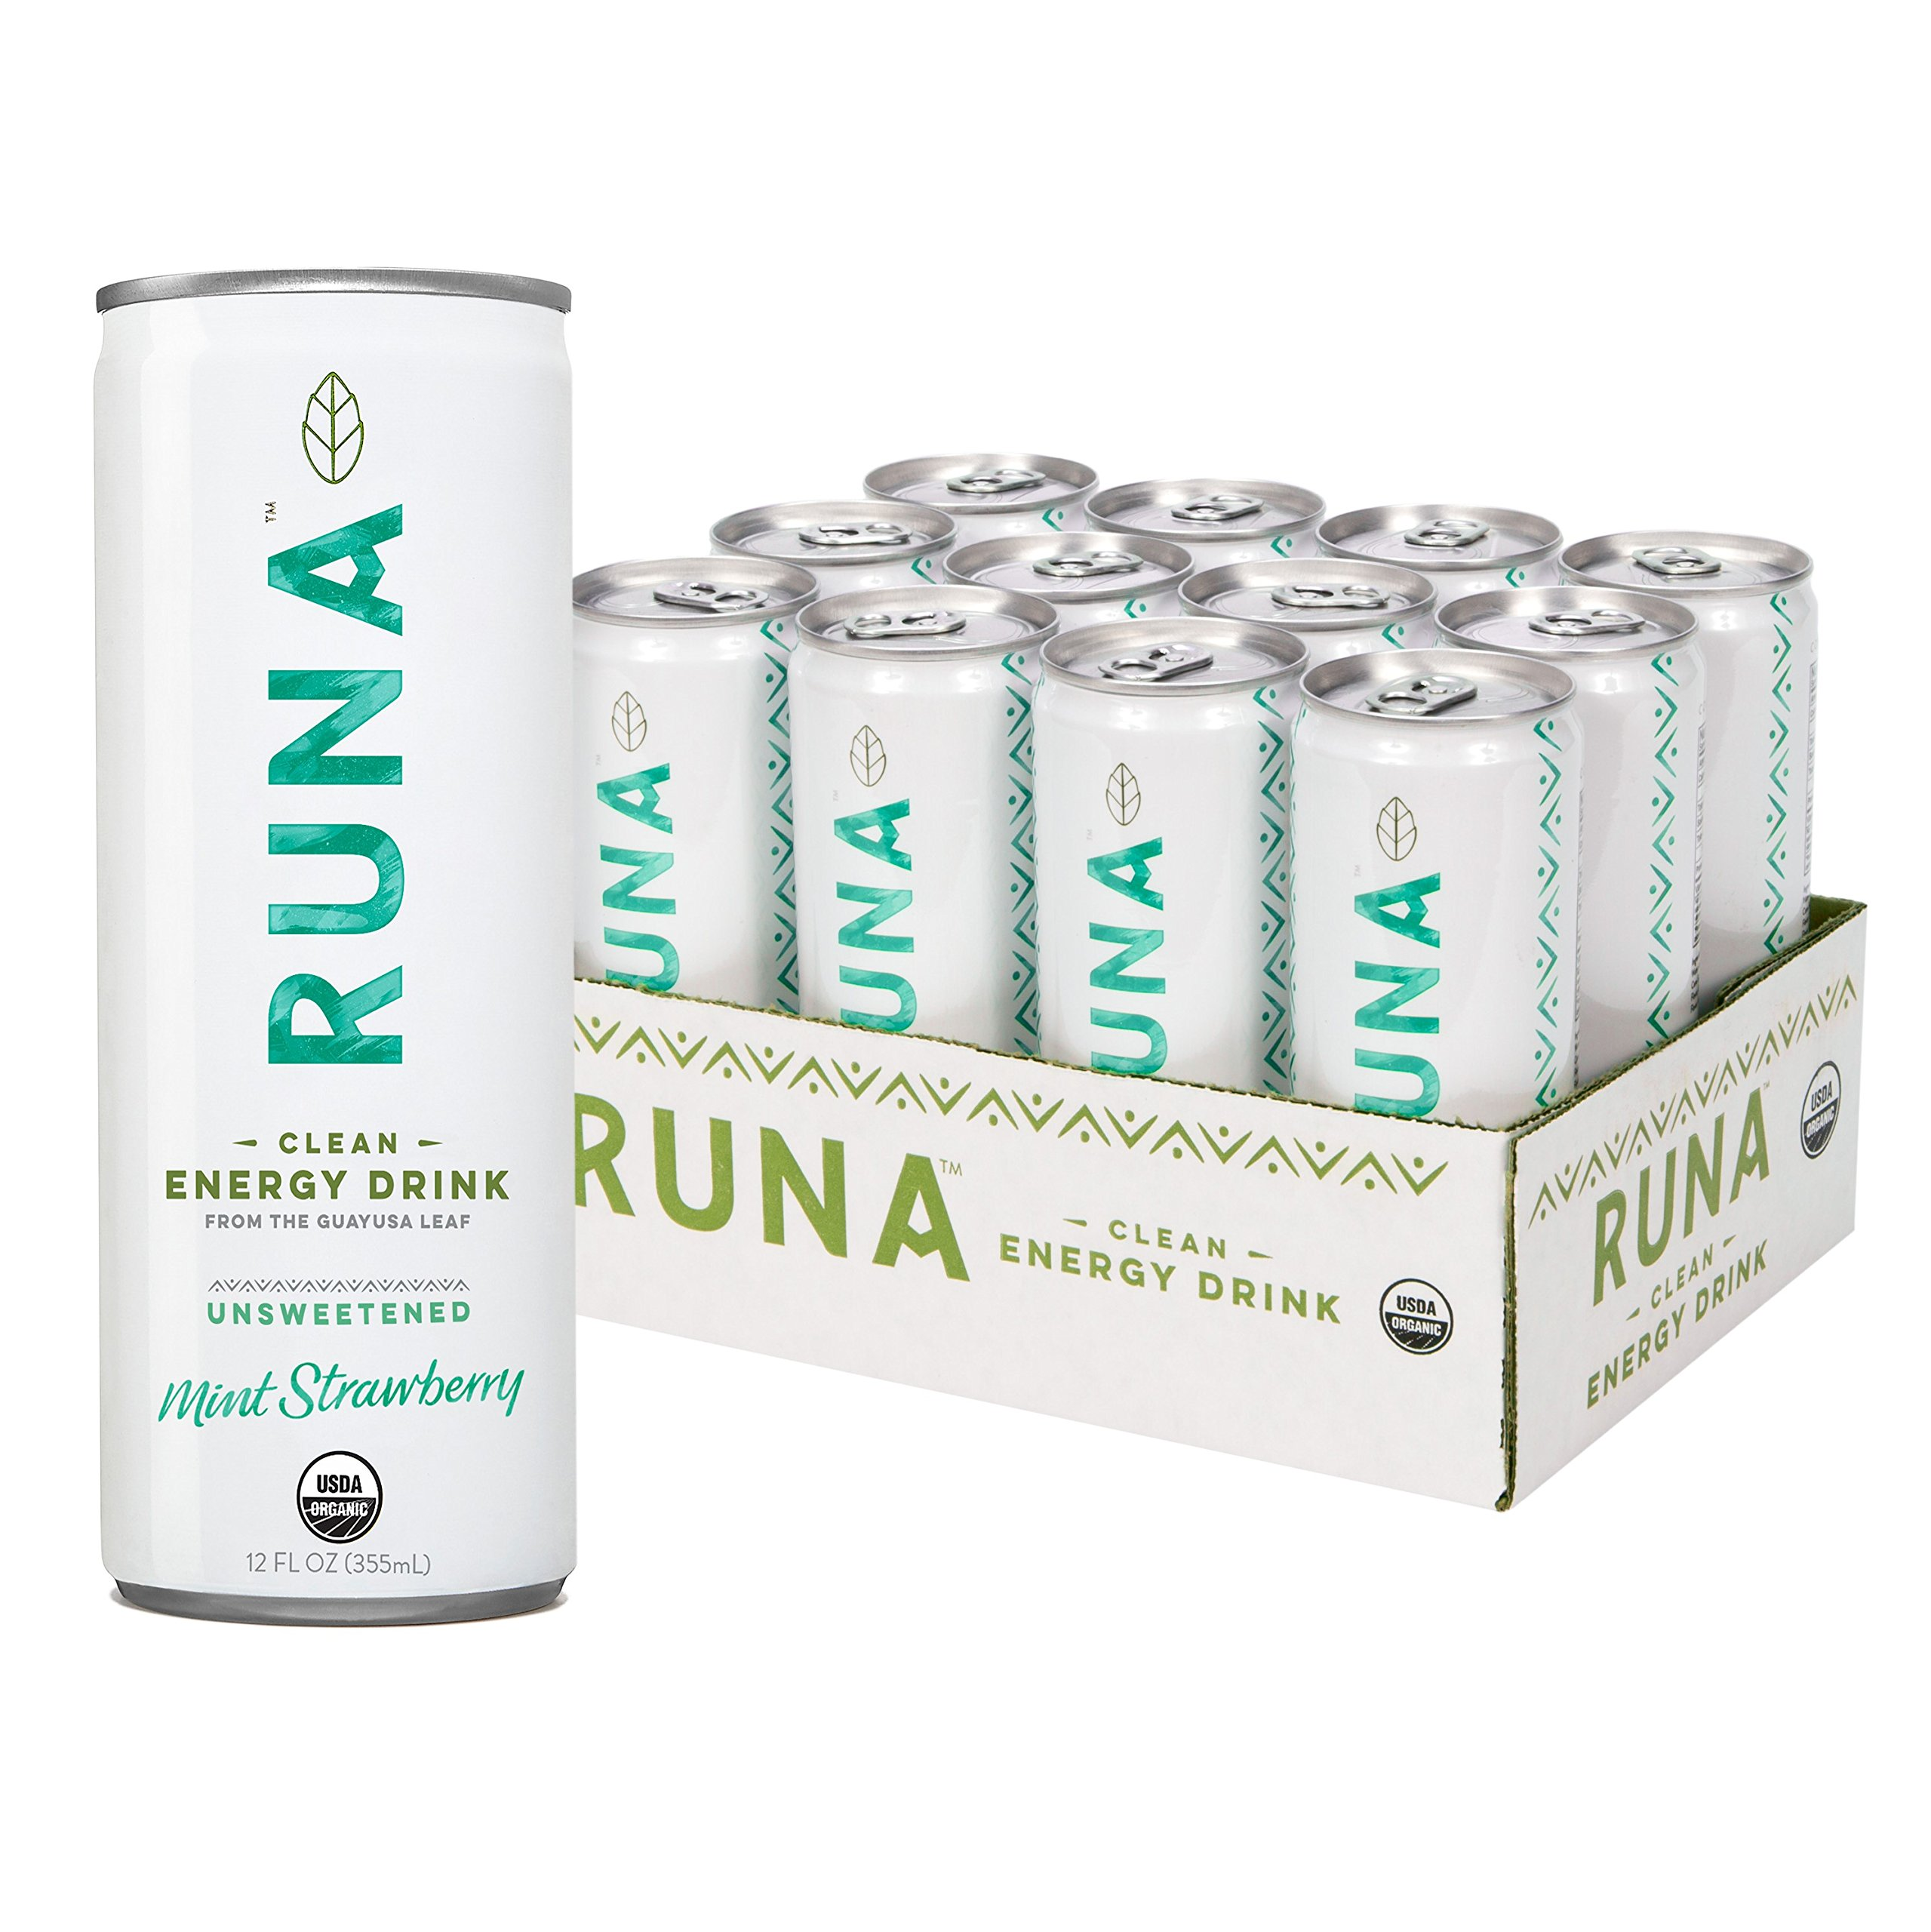 RUNA Organic Clean Energy Drink from the Guayusa Leaf, Unsweetened Mint Strawberry, 12 Ounce (Pack of 12)